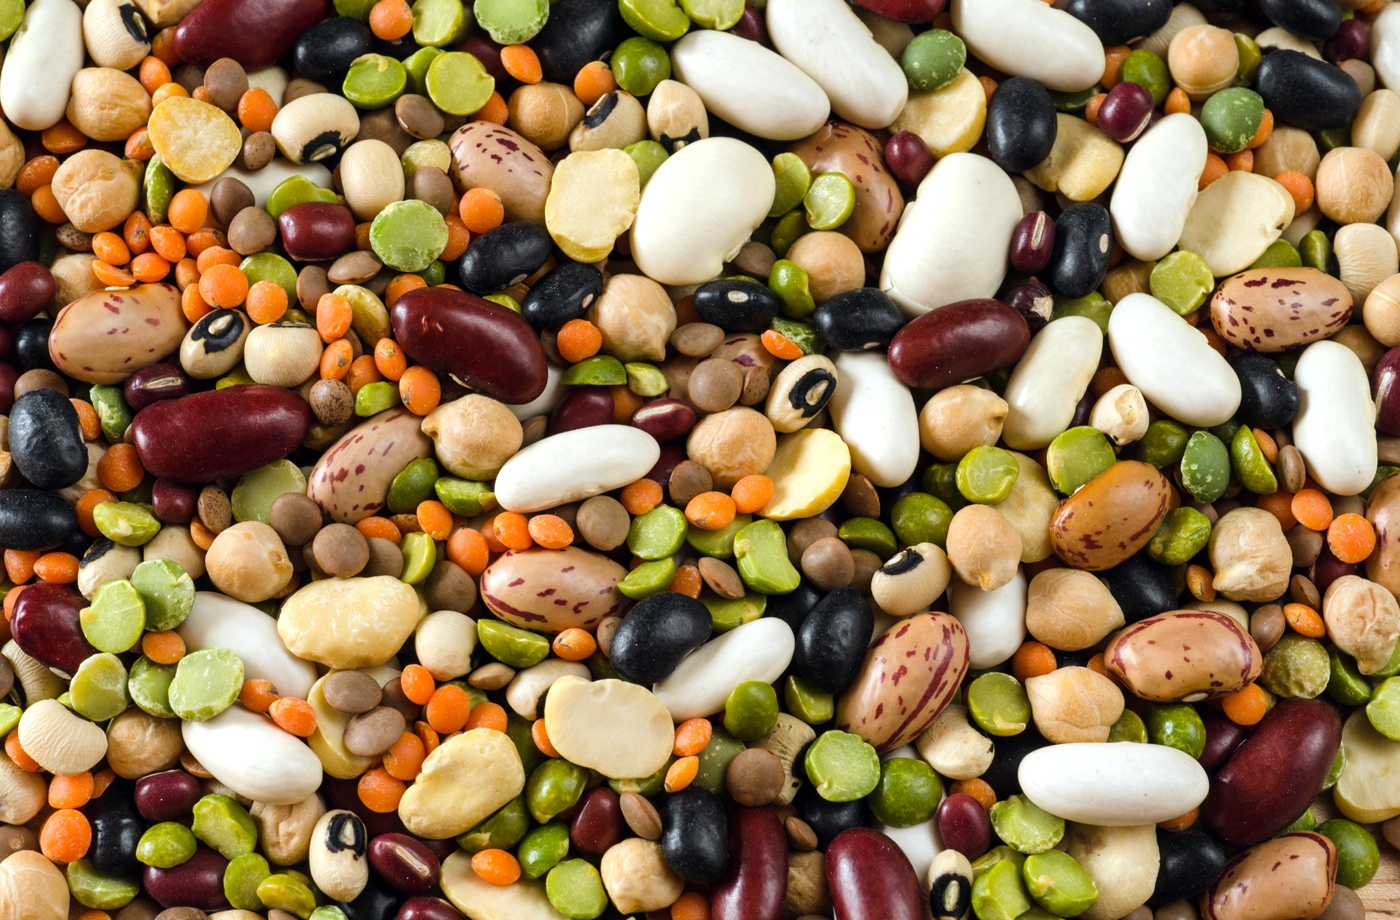 Thumbnail for The 6 most nutrient-dense foods that should rule your diet